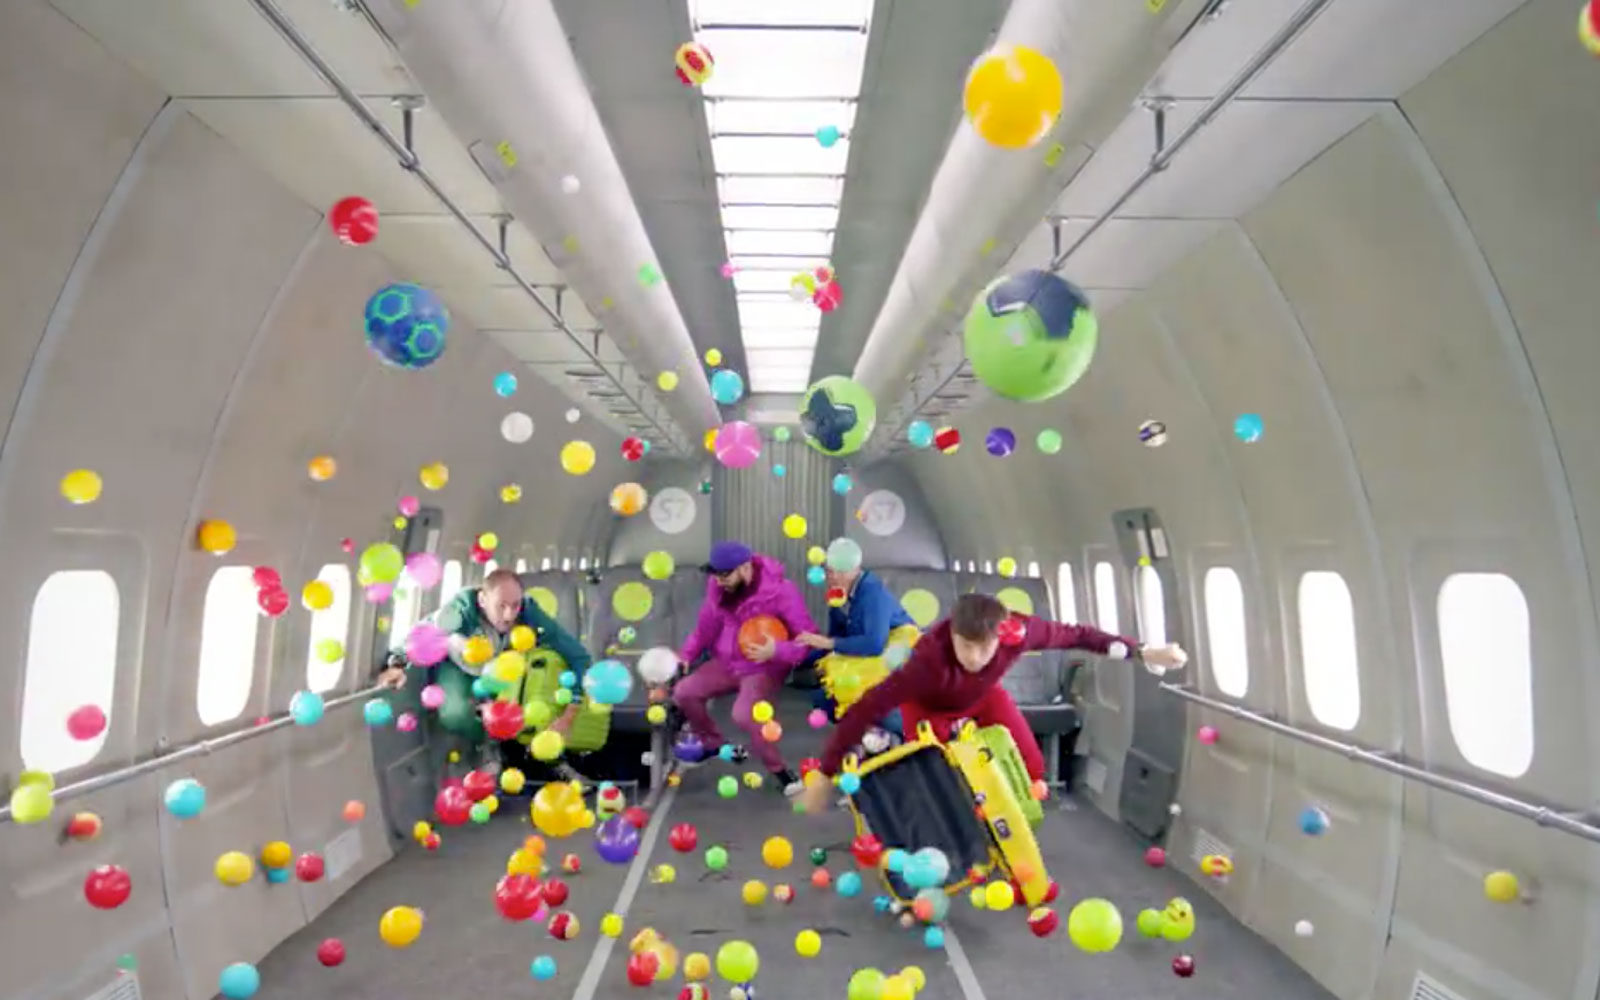 OK Go's New Music Video Features a Zero Gravity Airplane